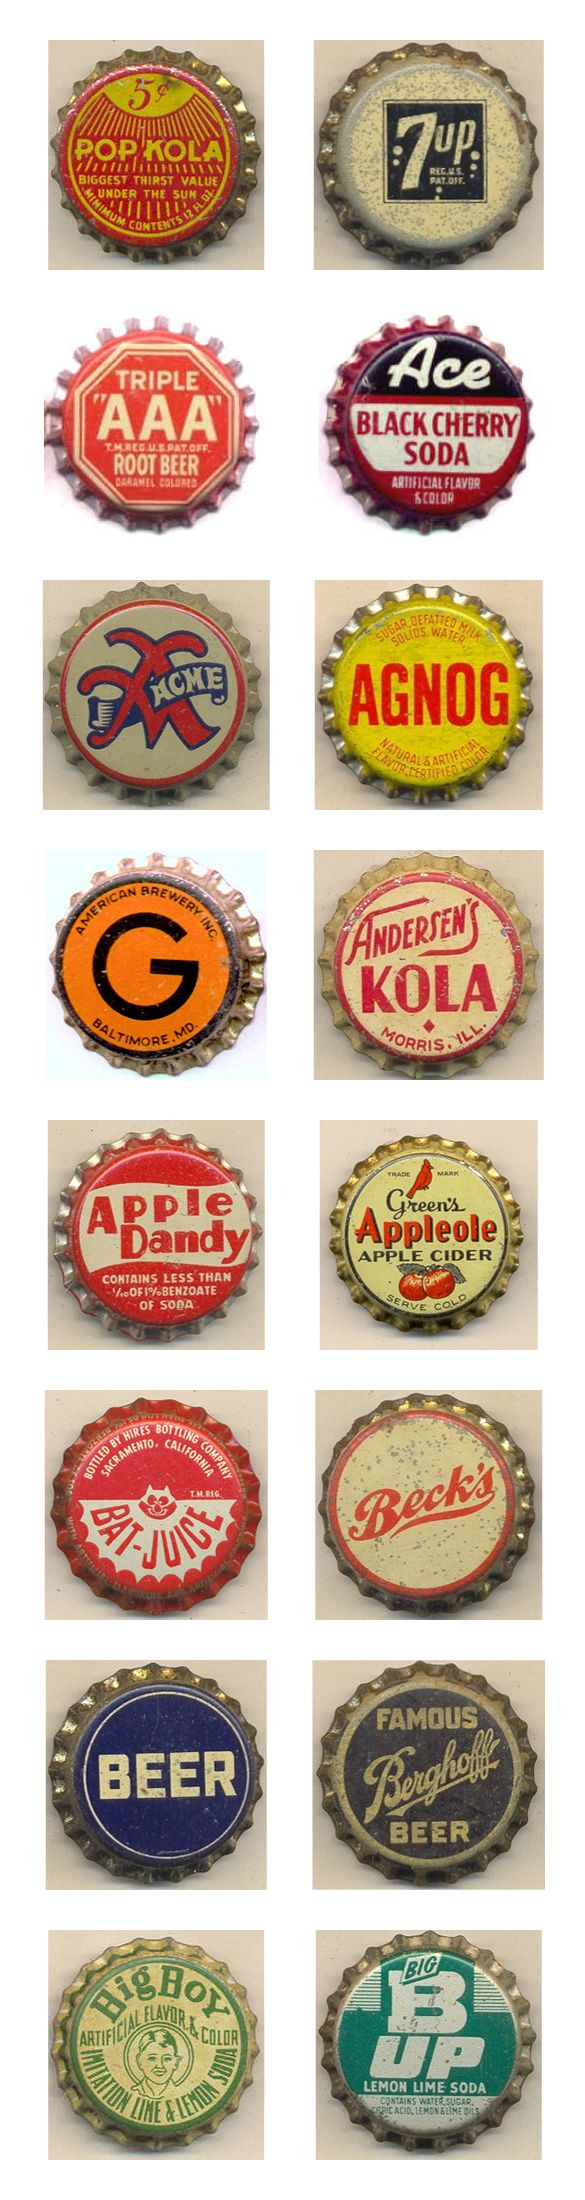 """vintage bottle caps - from Kenny Yohn's """"The Bottle Cap Man"""" collection"""